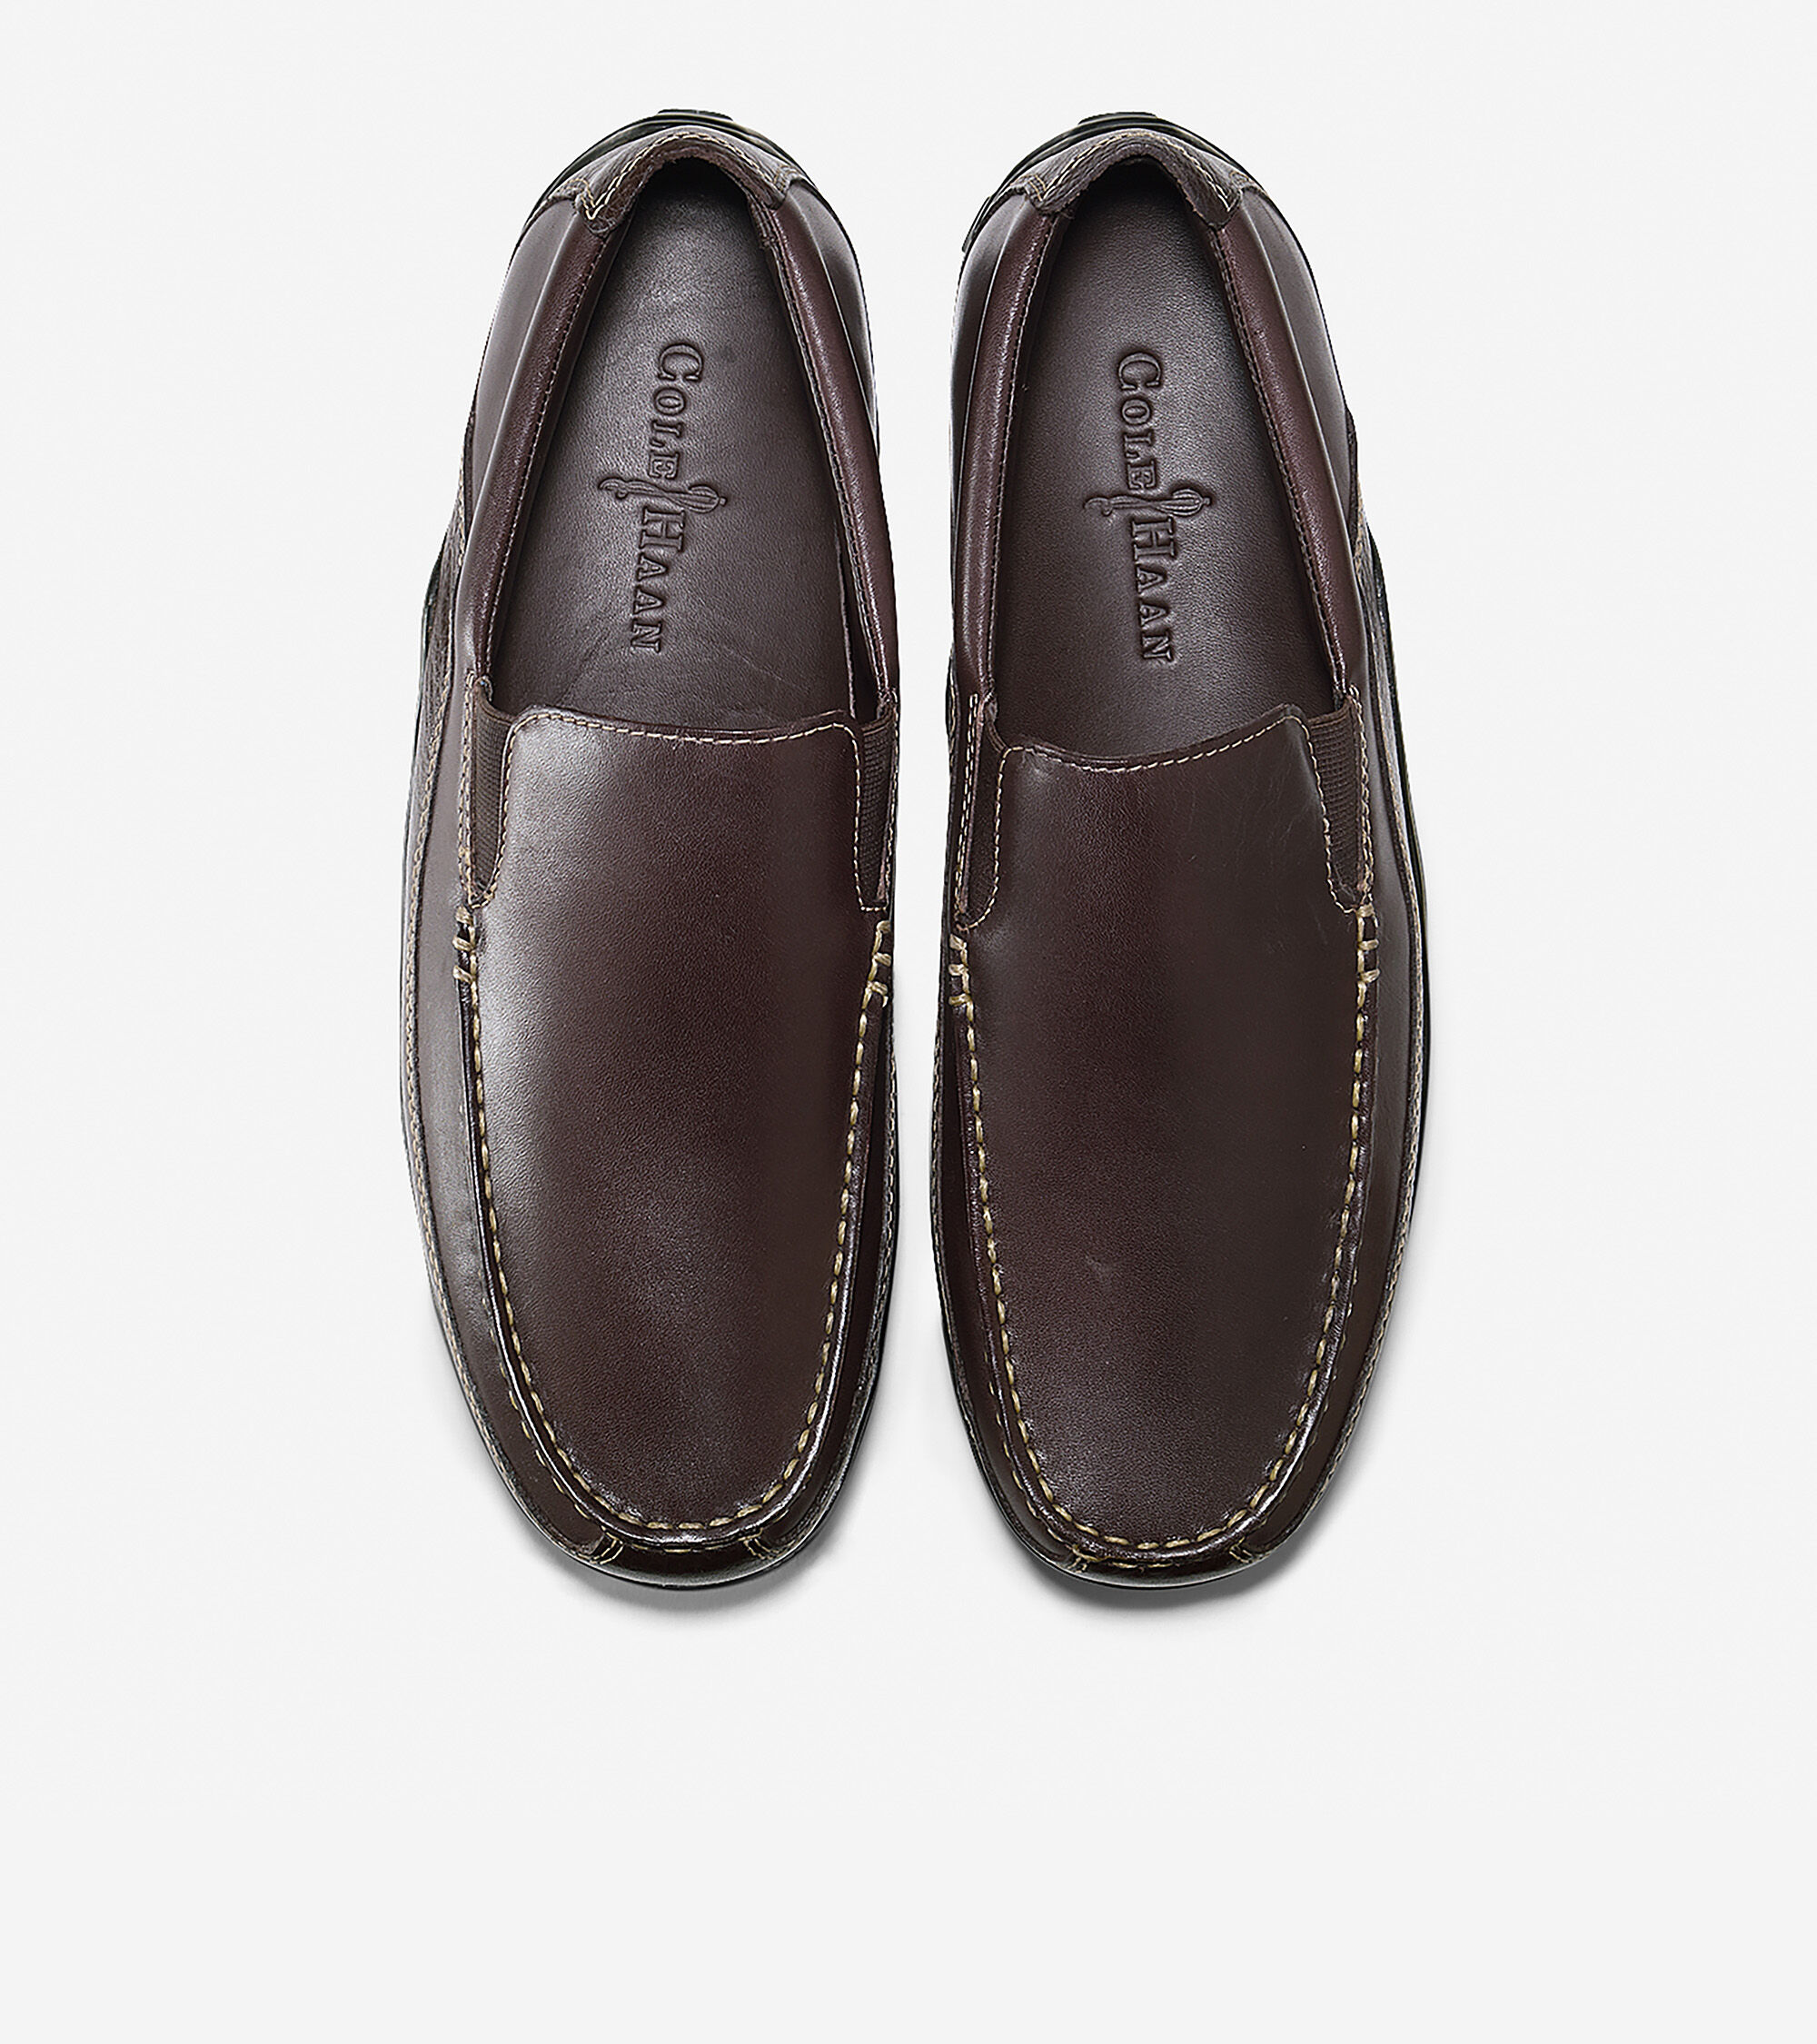 176c4a6ea39 ... Tucker Venetian Loafer  Tucker Venetian Loafer  Tucker Venetian Loafer.   COLEHAAN